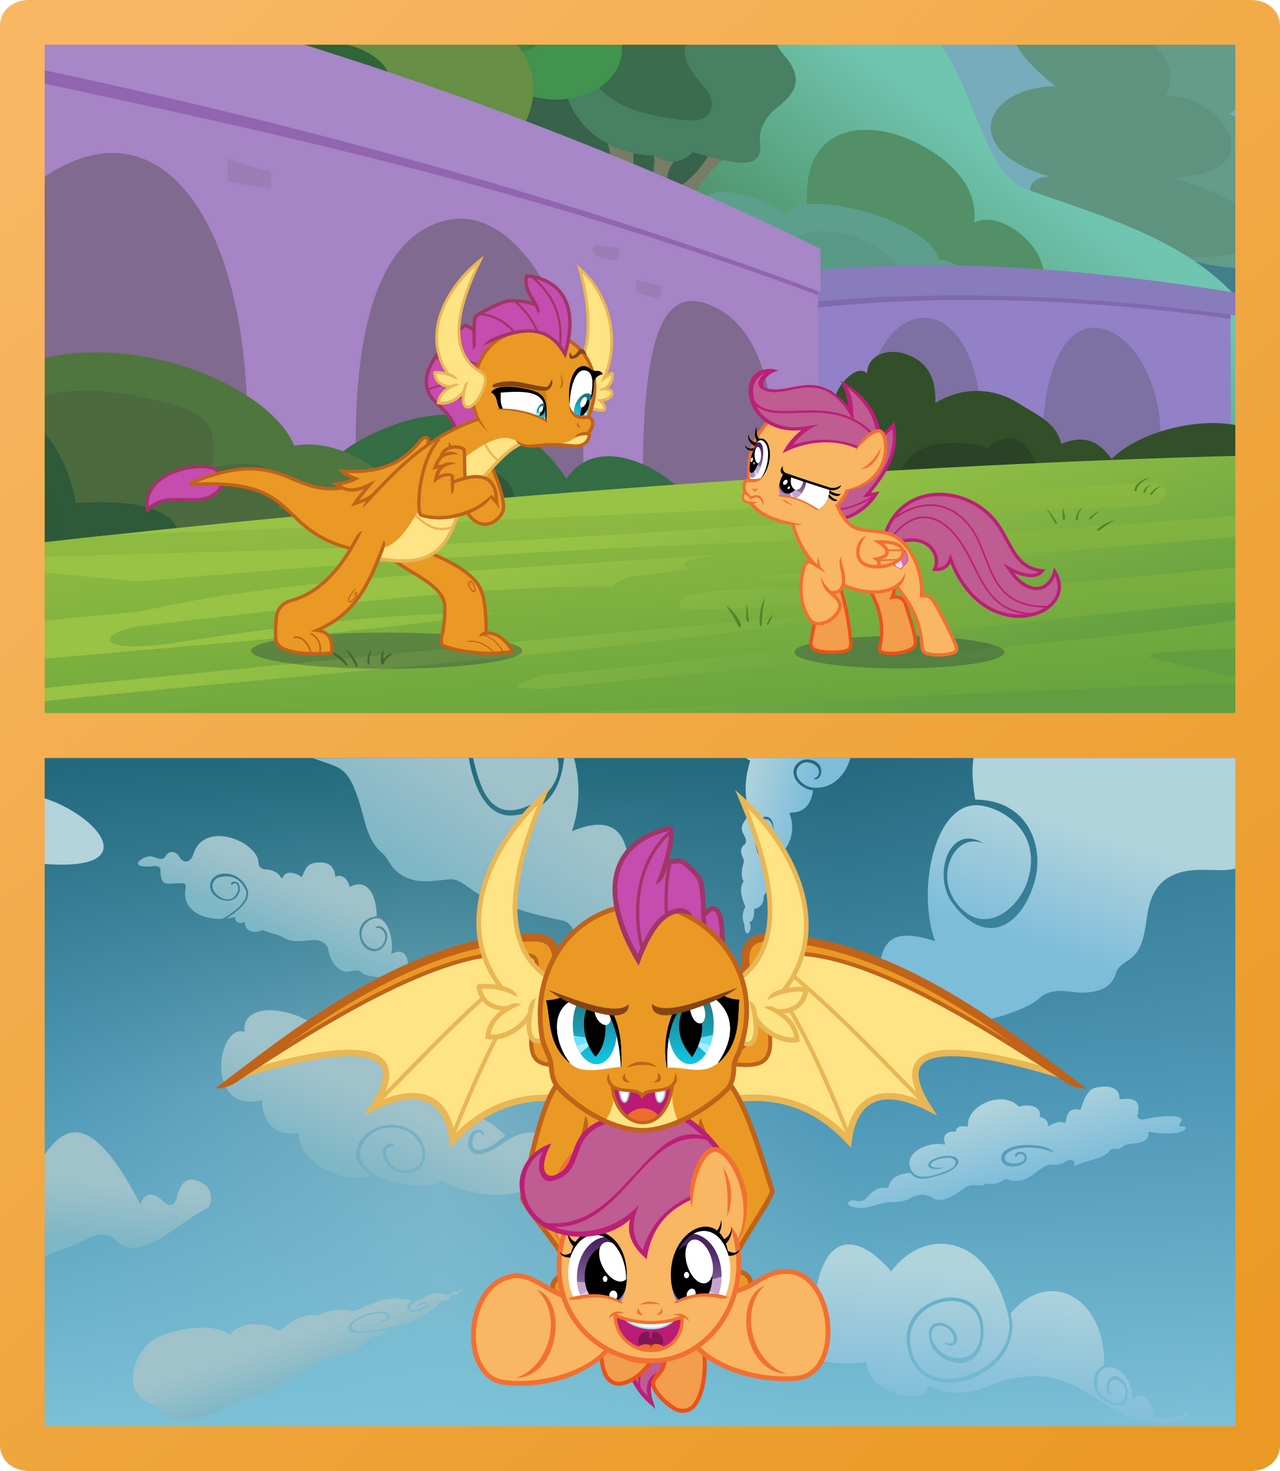 Scootaloo and Smolder. Cut from the same cloth.